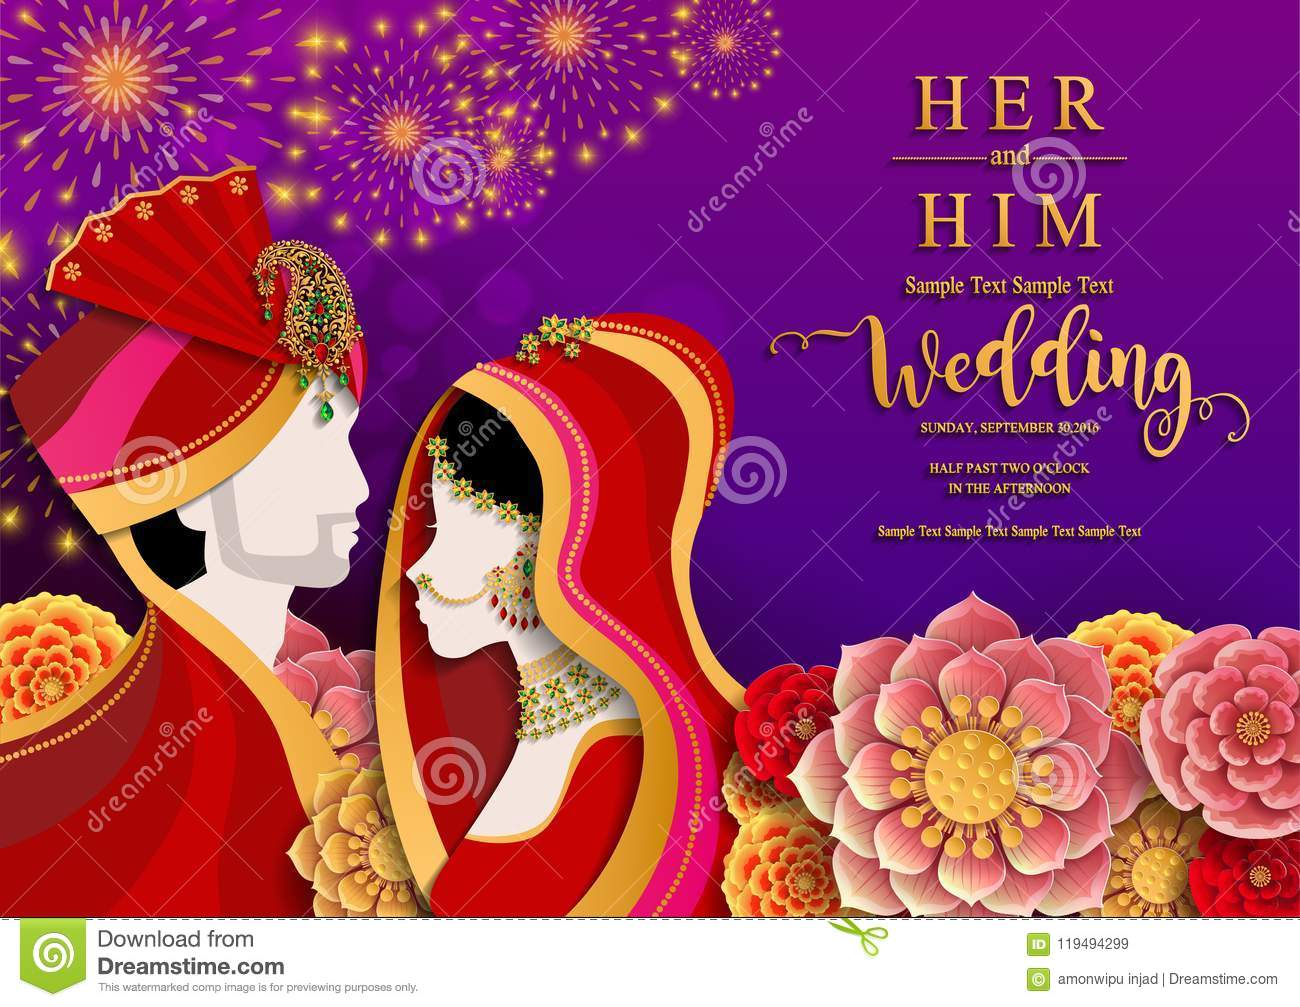 https www dreamstime com wedding invitation card templates indian man women traditional clothes paper color background image119494299